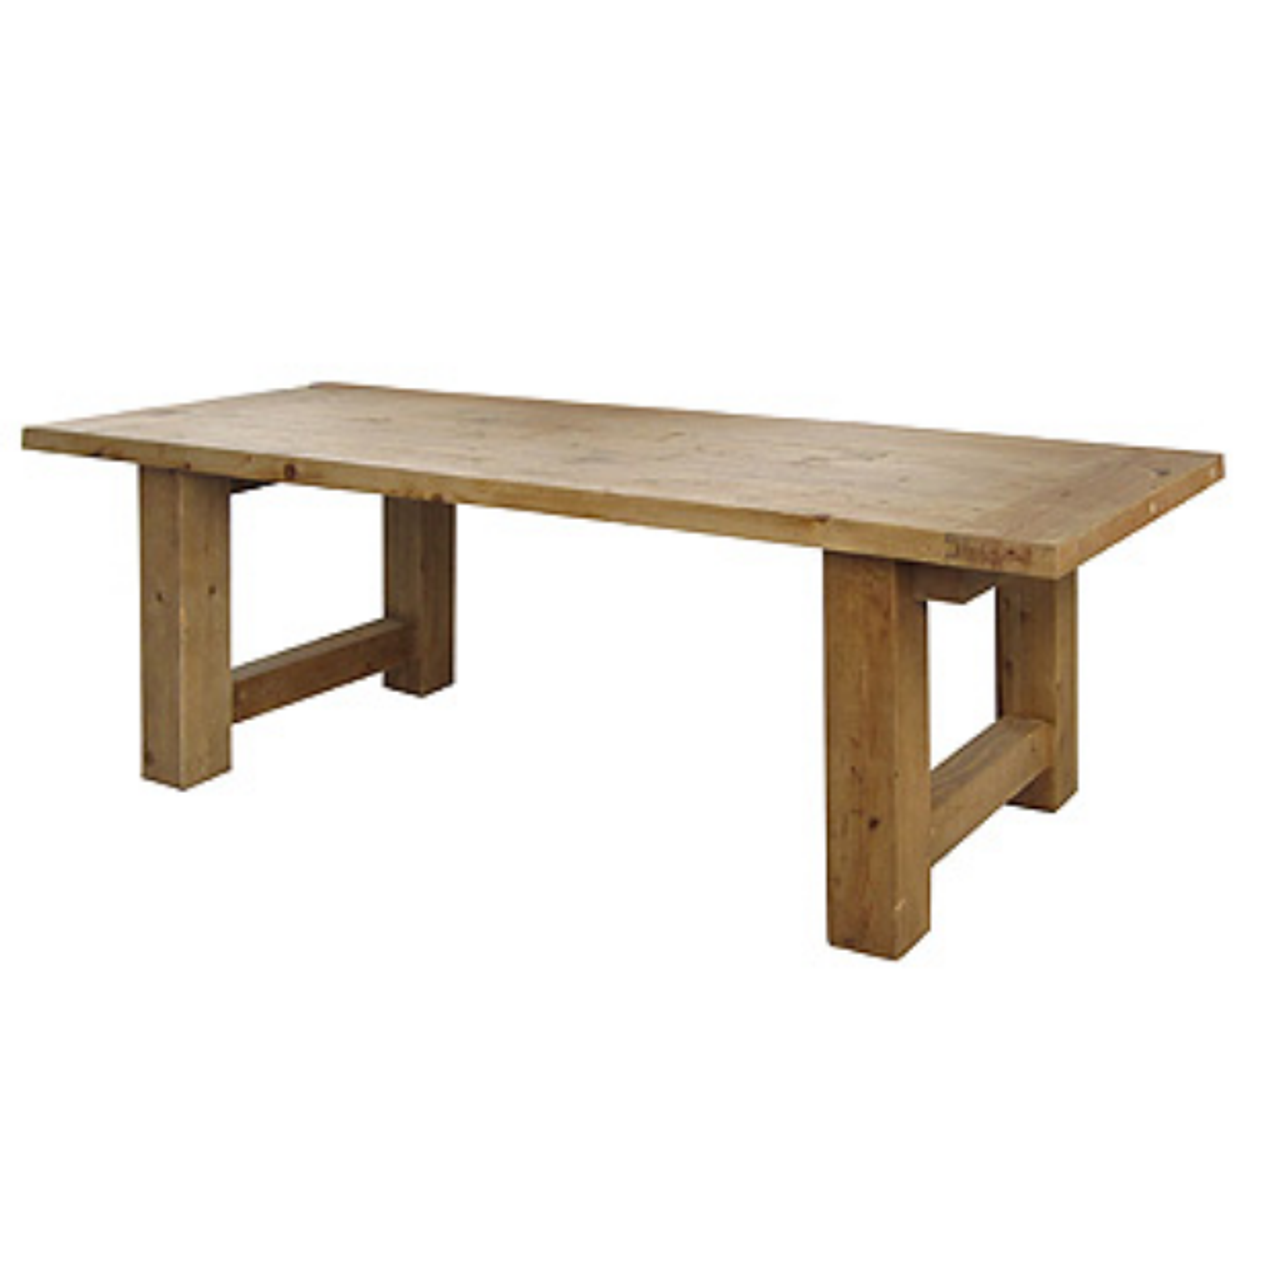 Barn House Wood Dining Room Table 98\